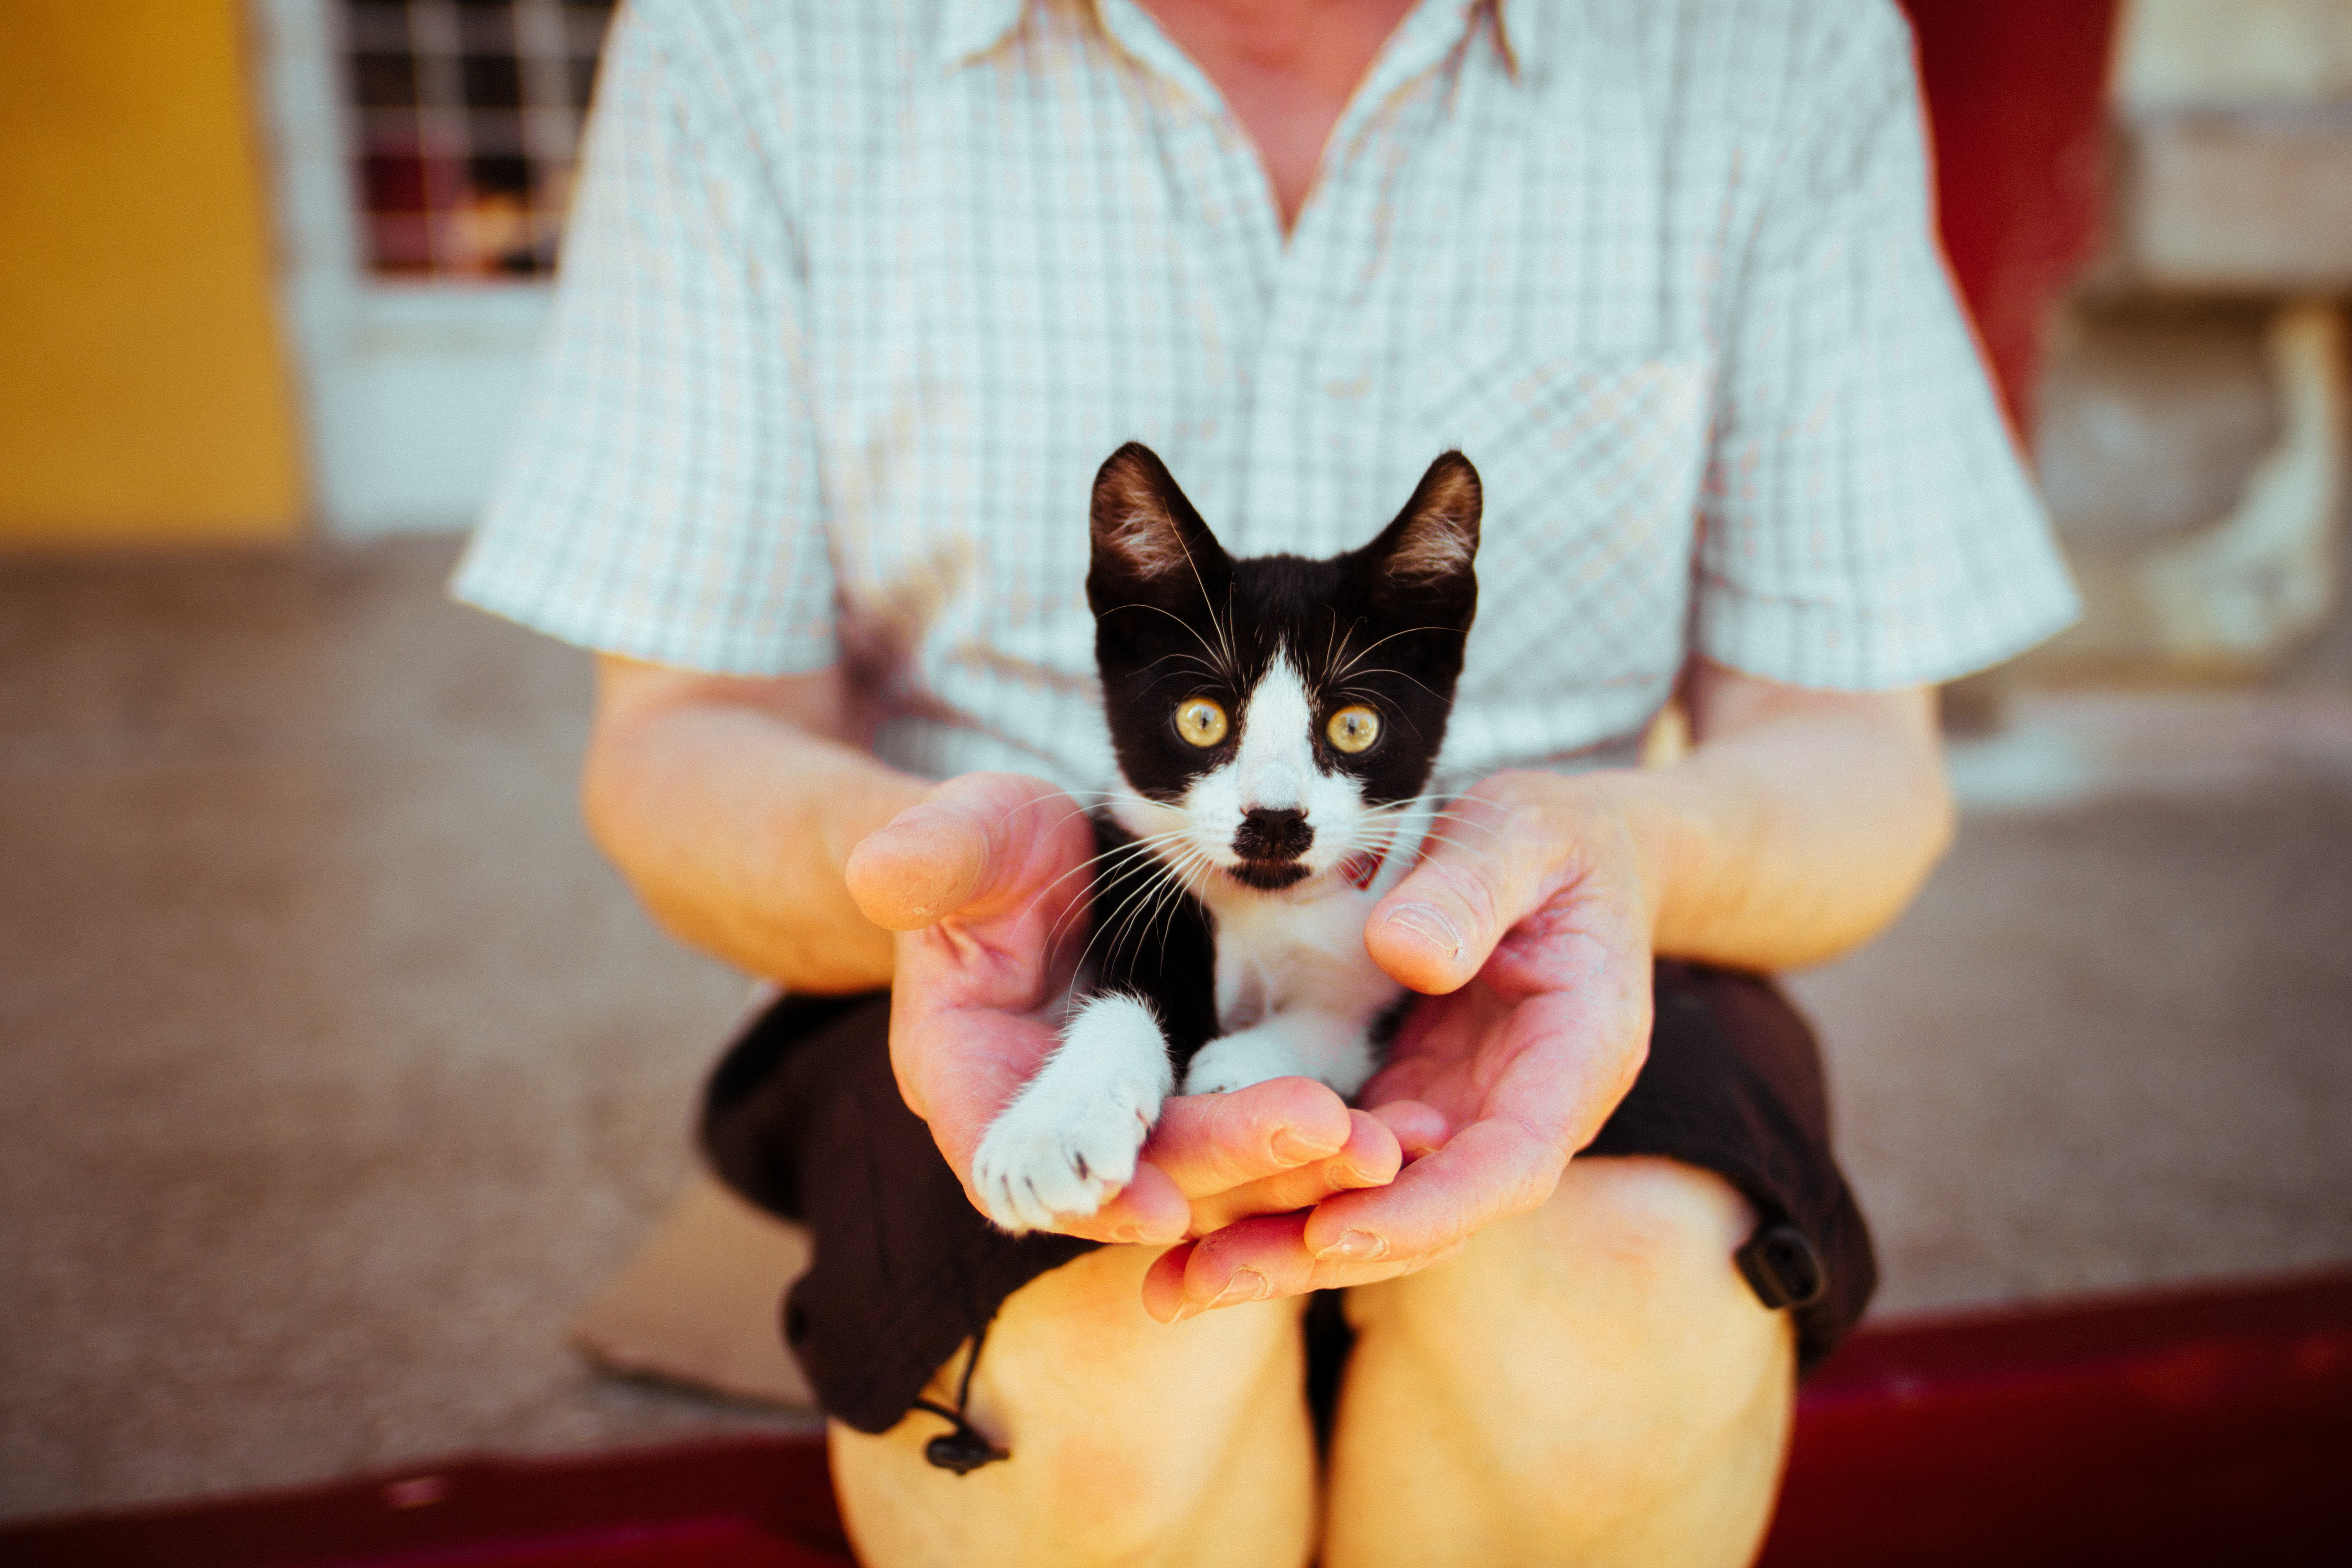 A black and white cat sitting on the lap of a person in a shirt